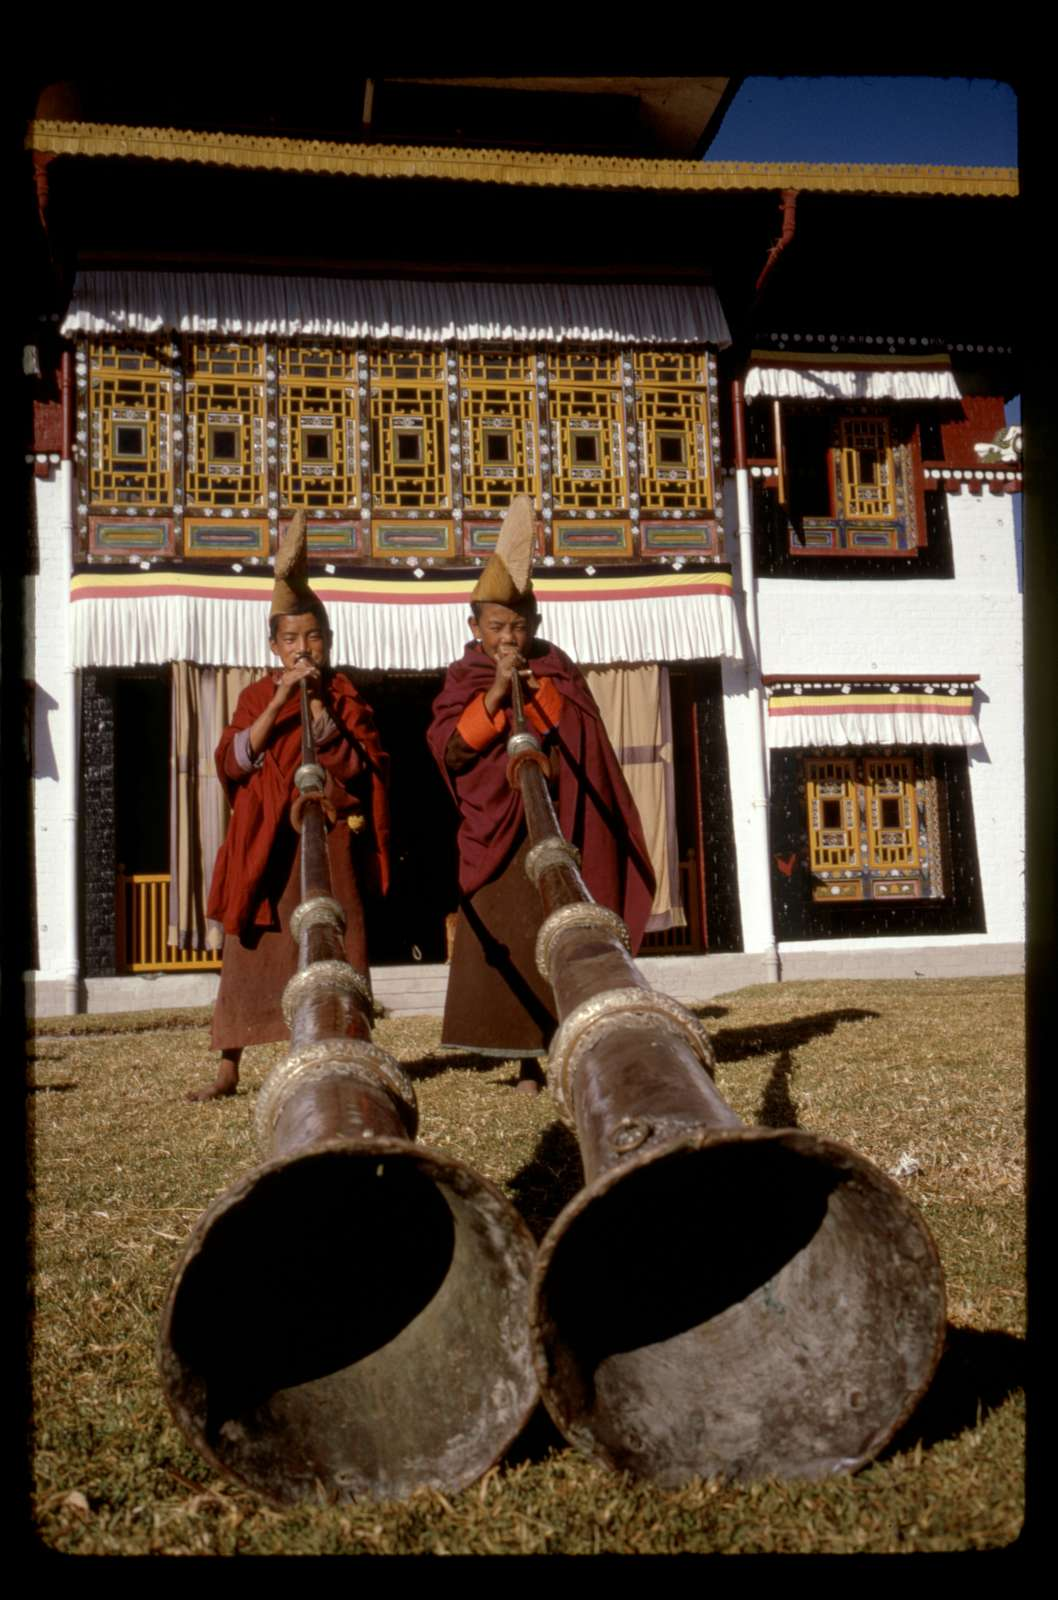 [Boys blowing gyalings in front of the Tsuklakhang Main Temple (Palace Temple), Gangtok, Sikkim]